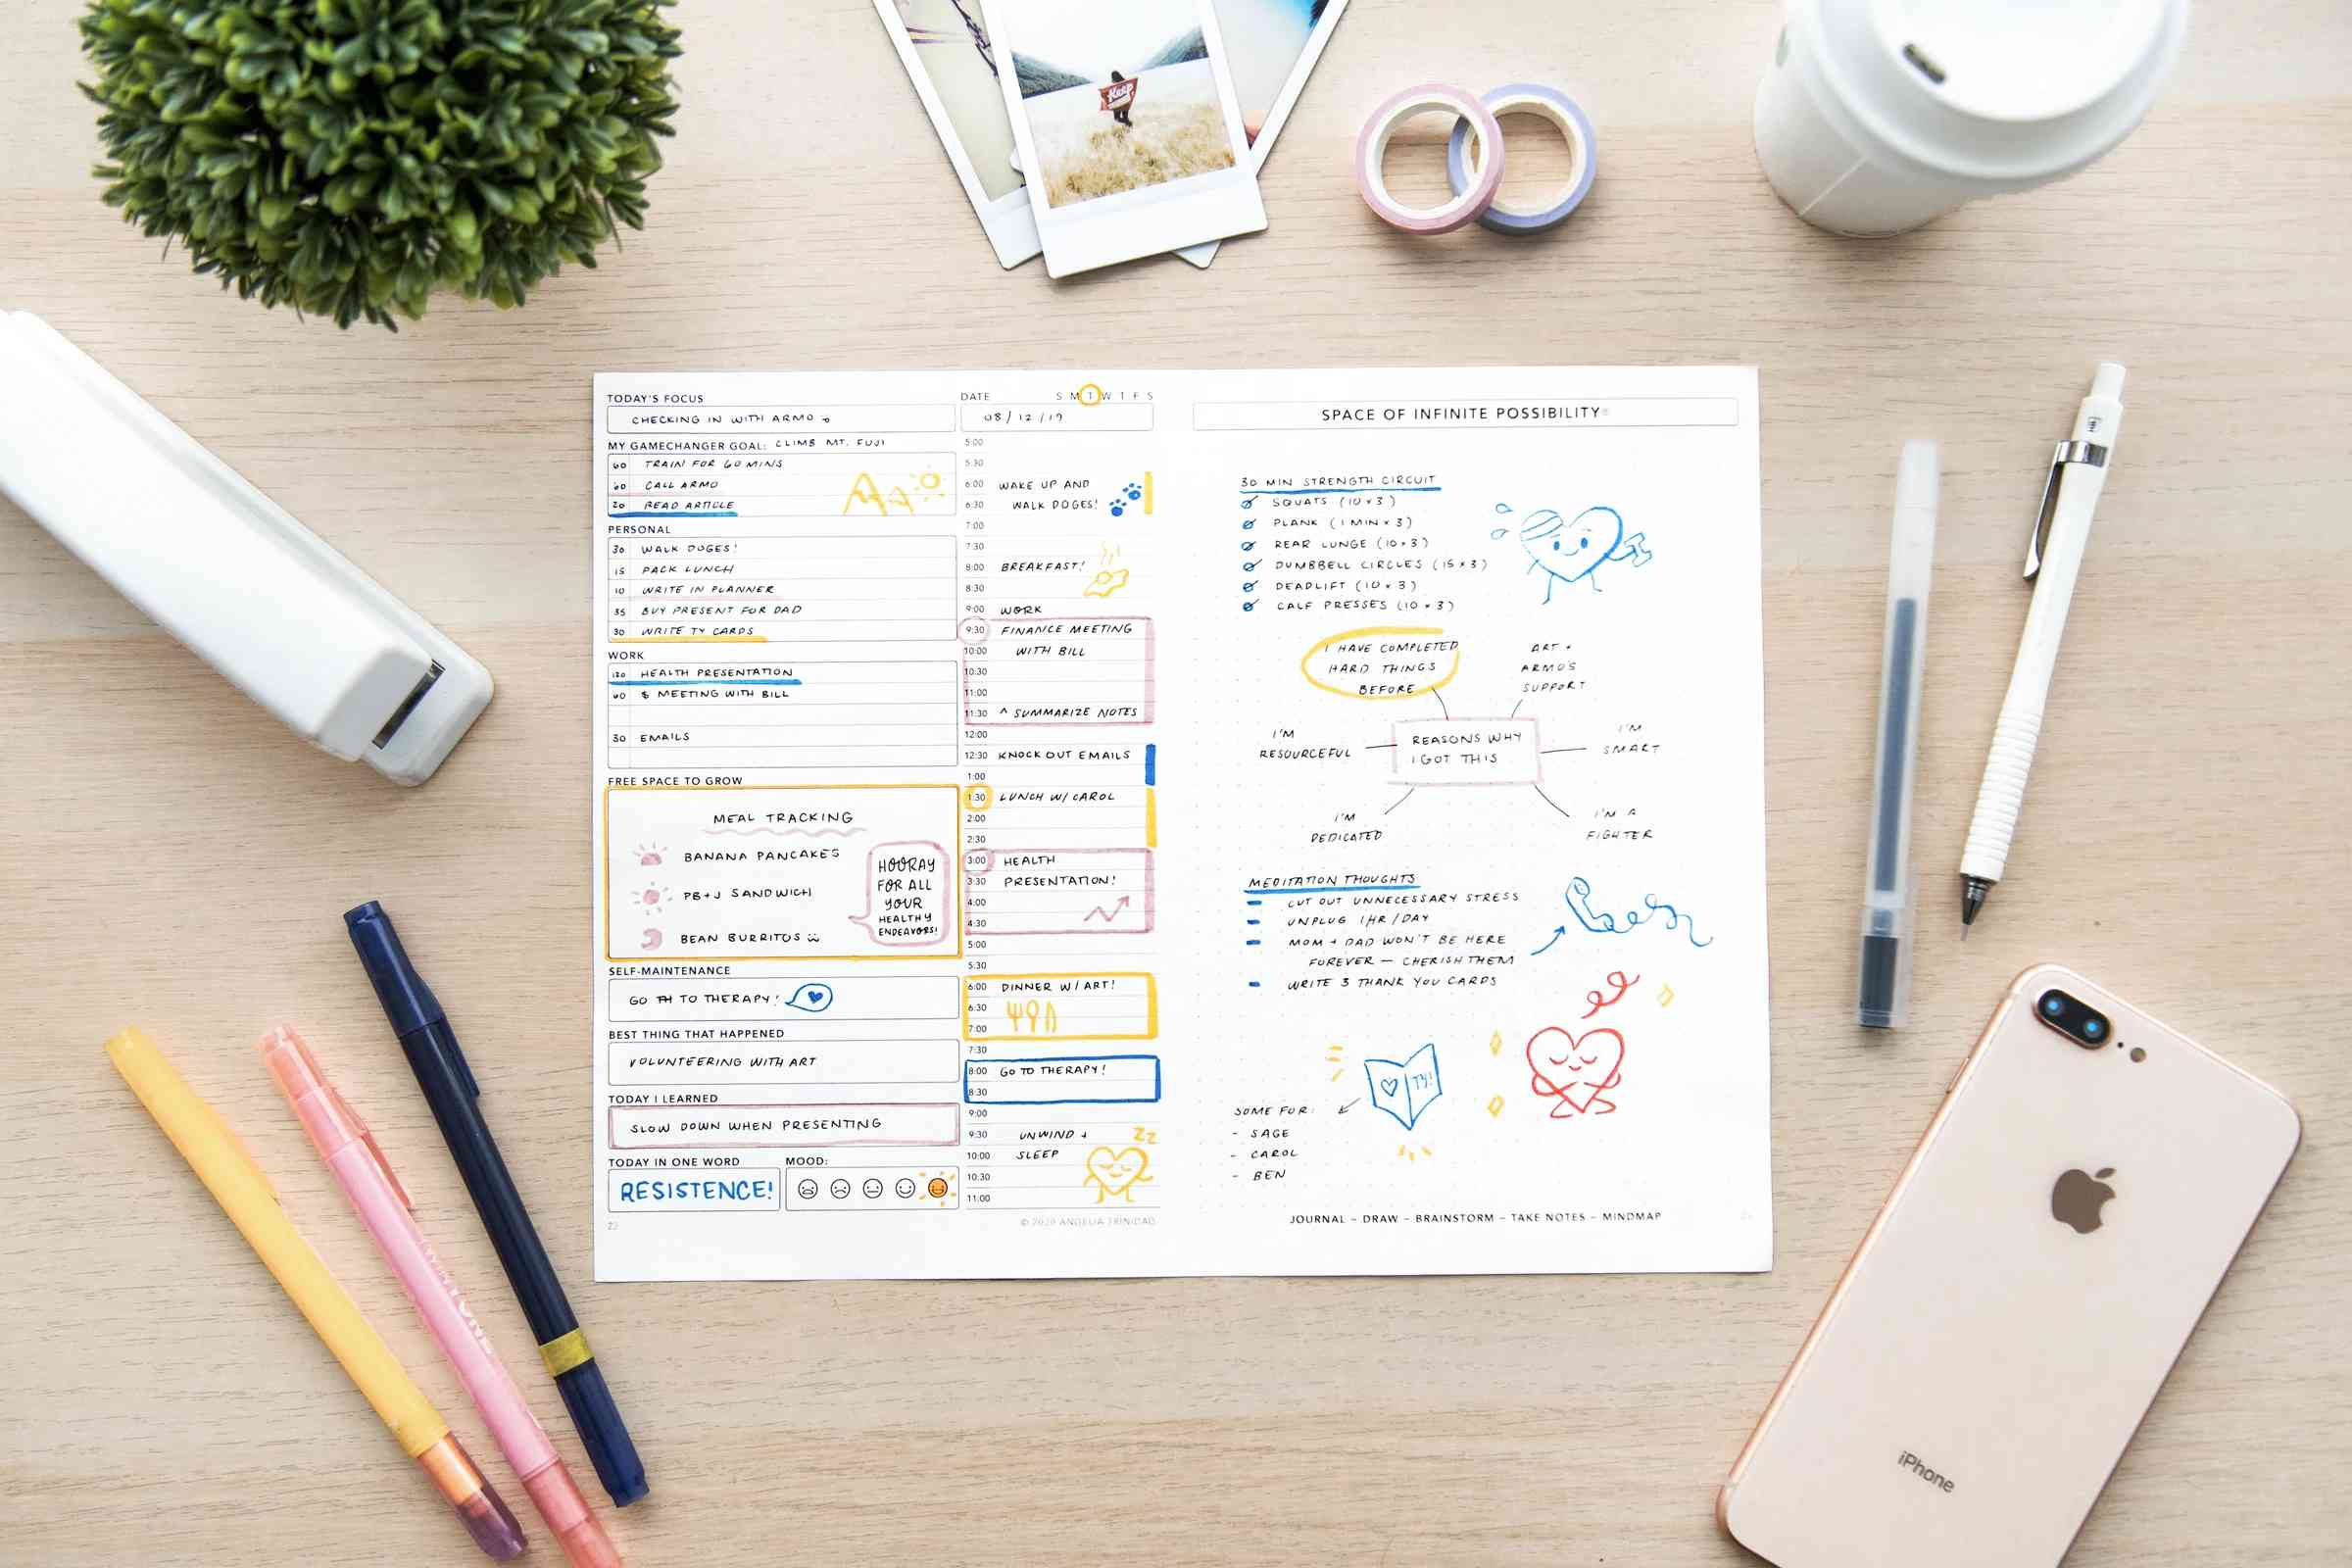 A daily planner on a desk with a phone and office supplies